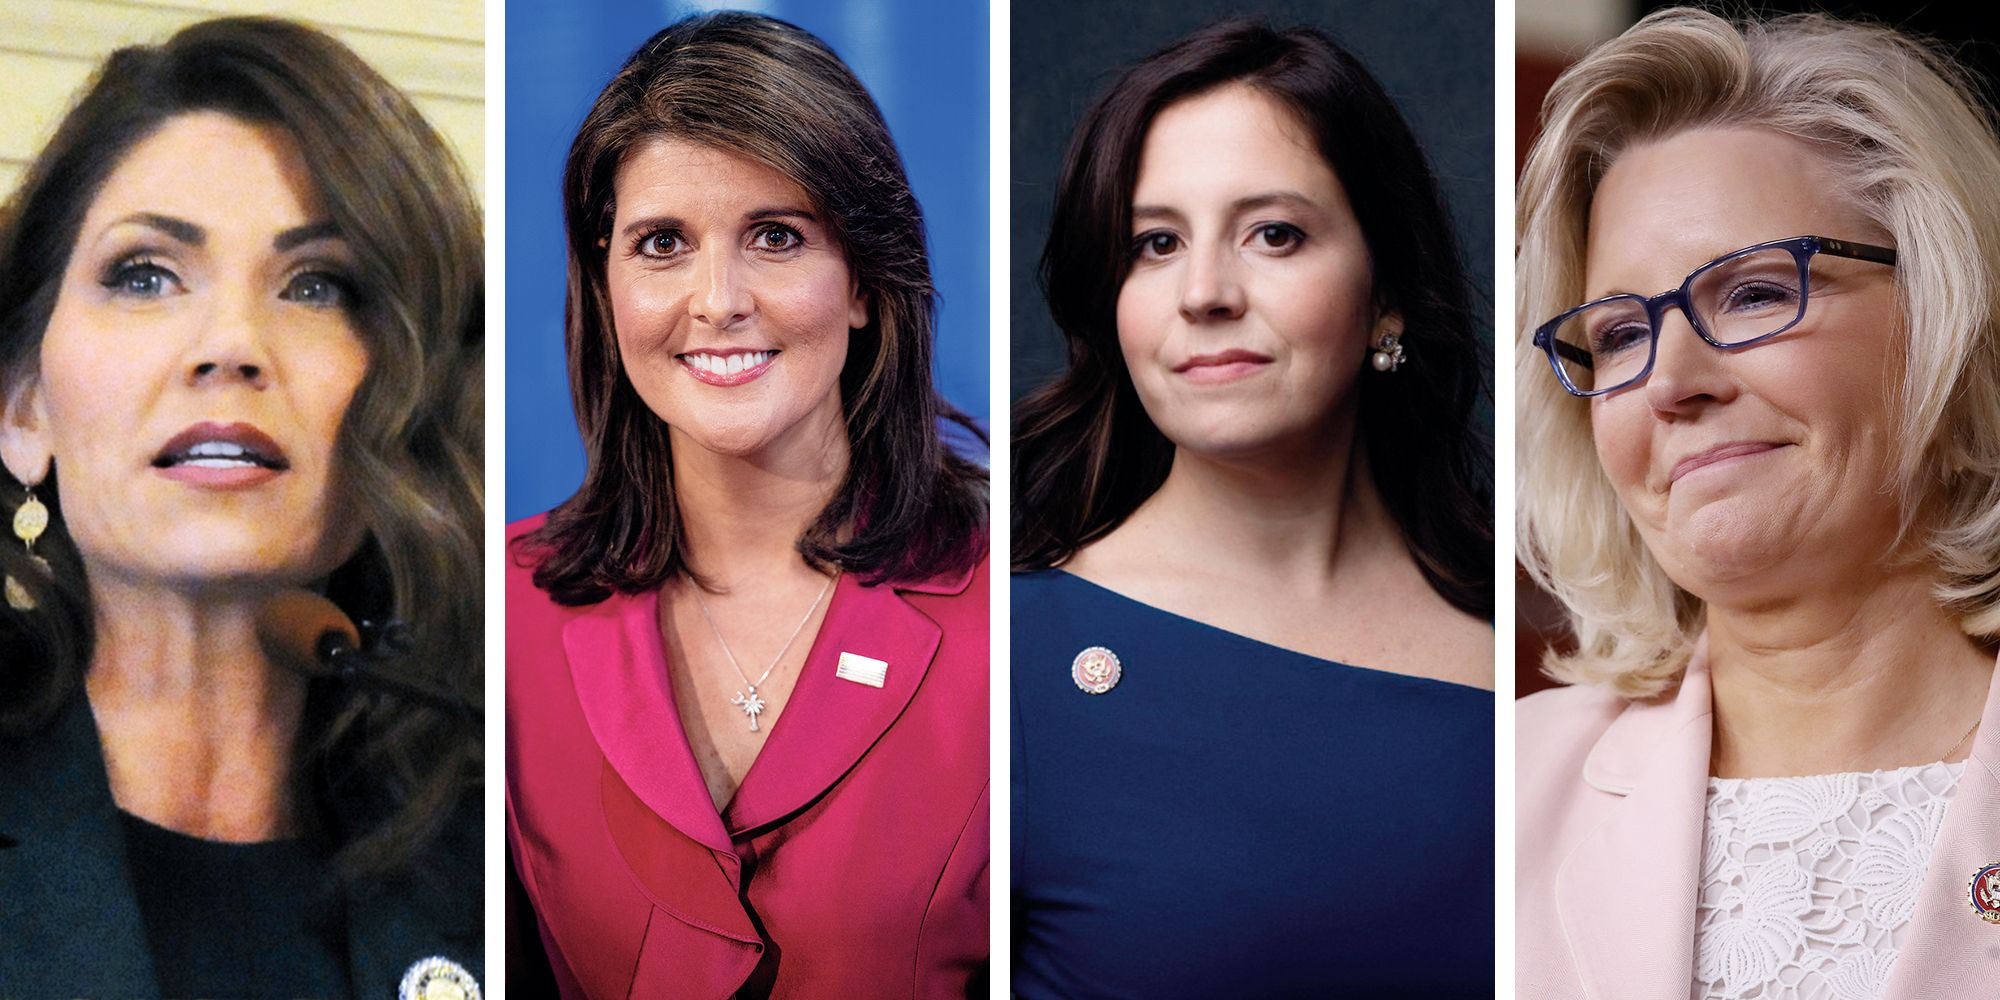 Is This the Year of the Republican Woman?